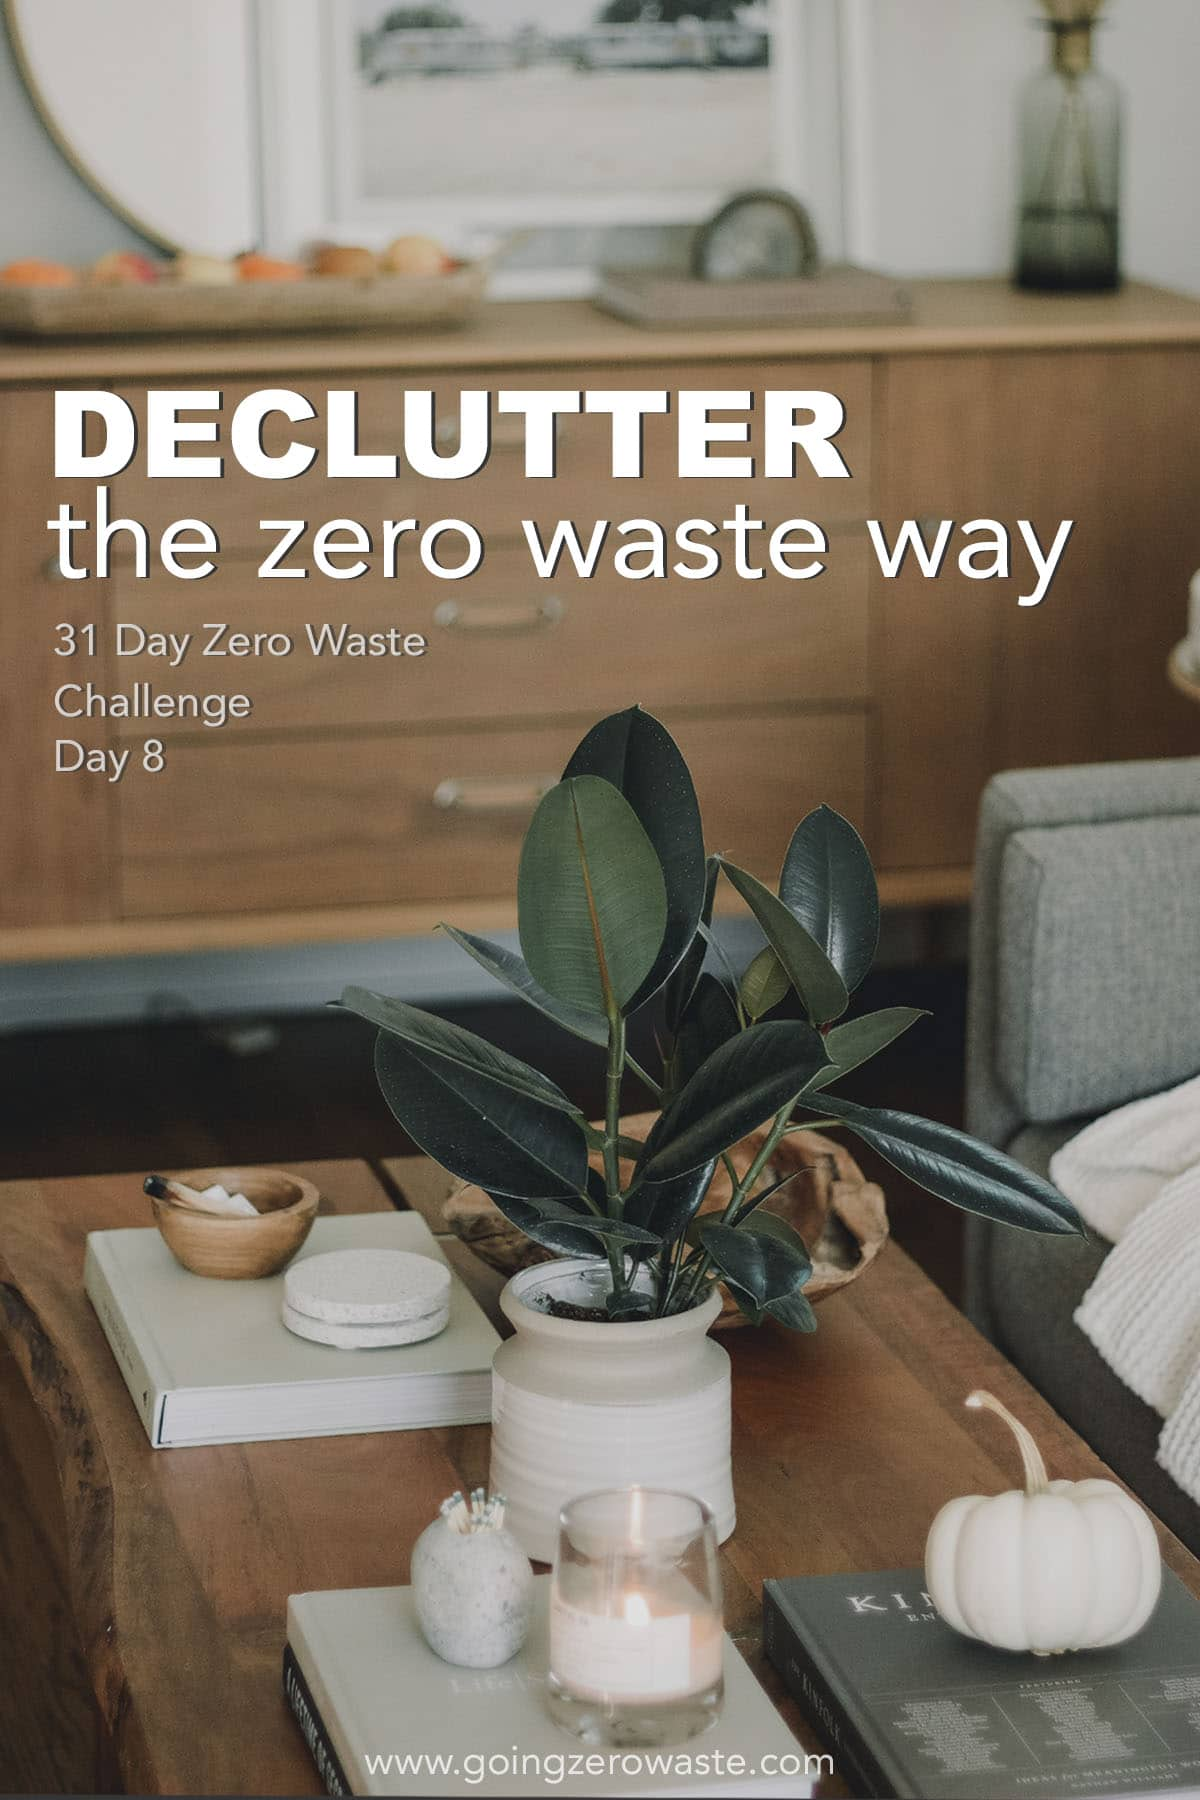 Declutter Your Life - Day 8 of the Zero Waste Challenge